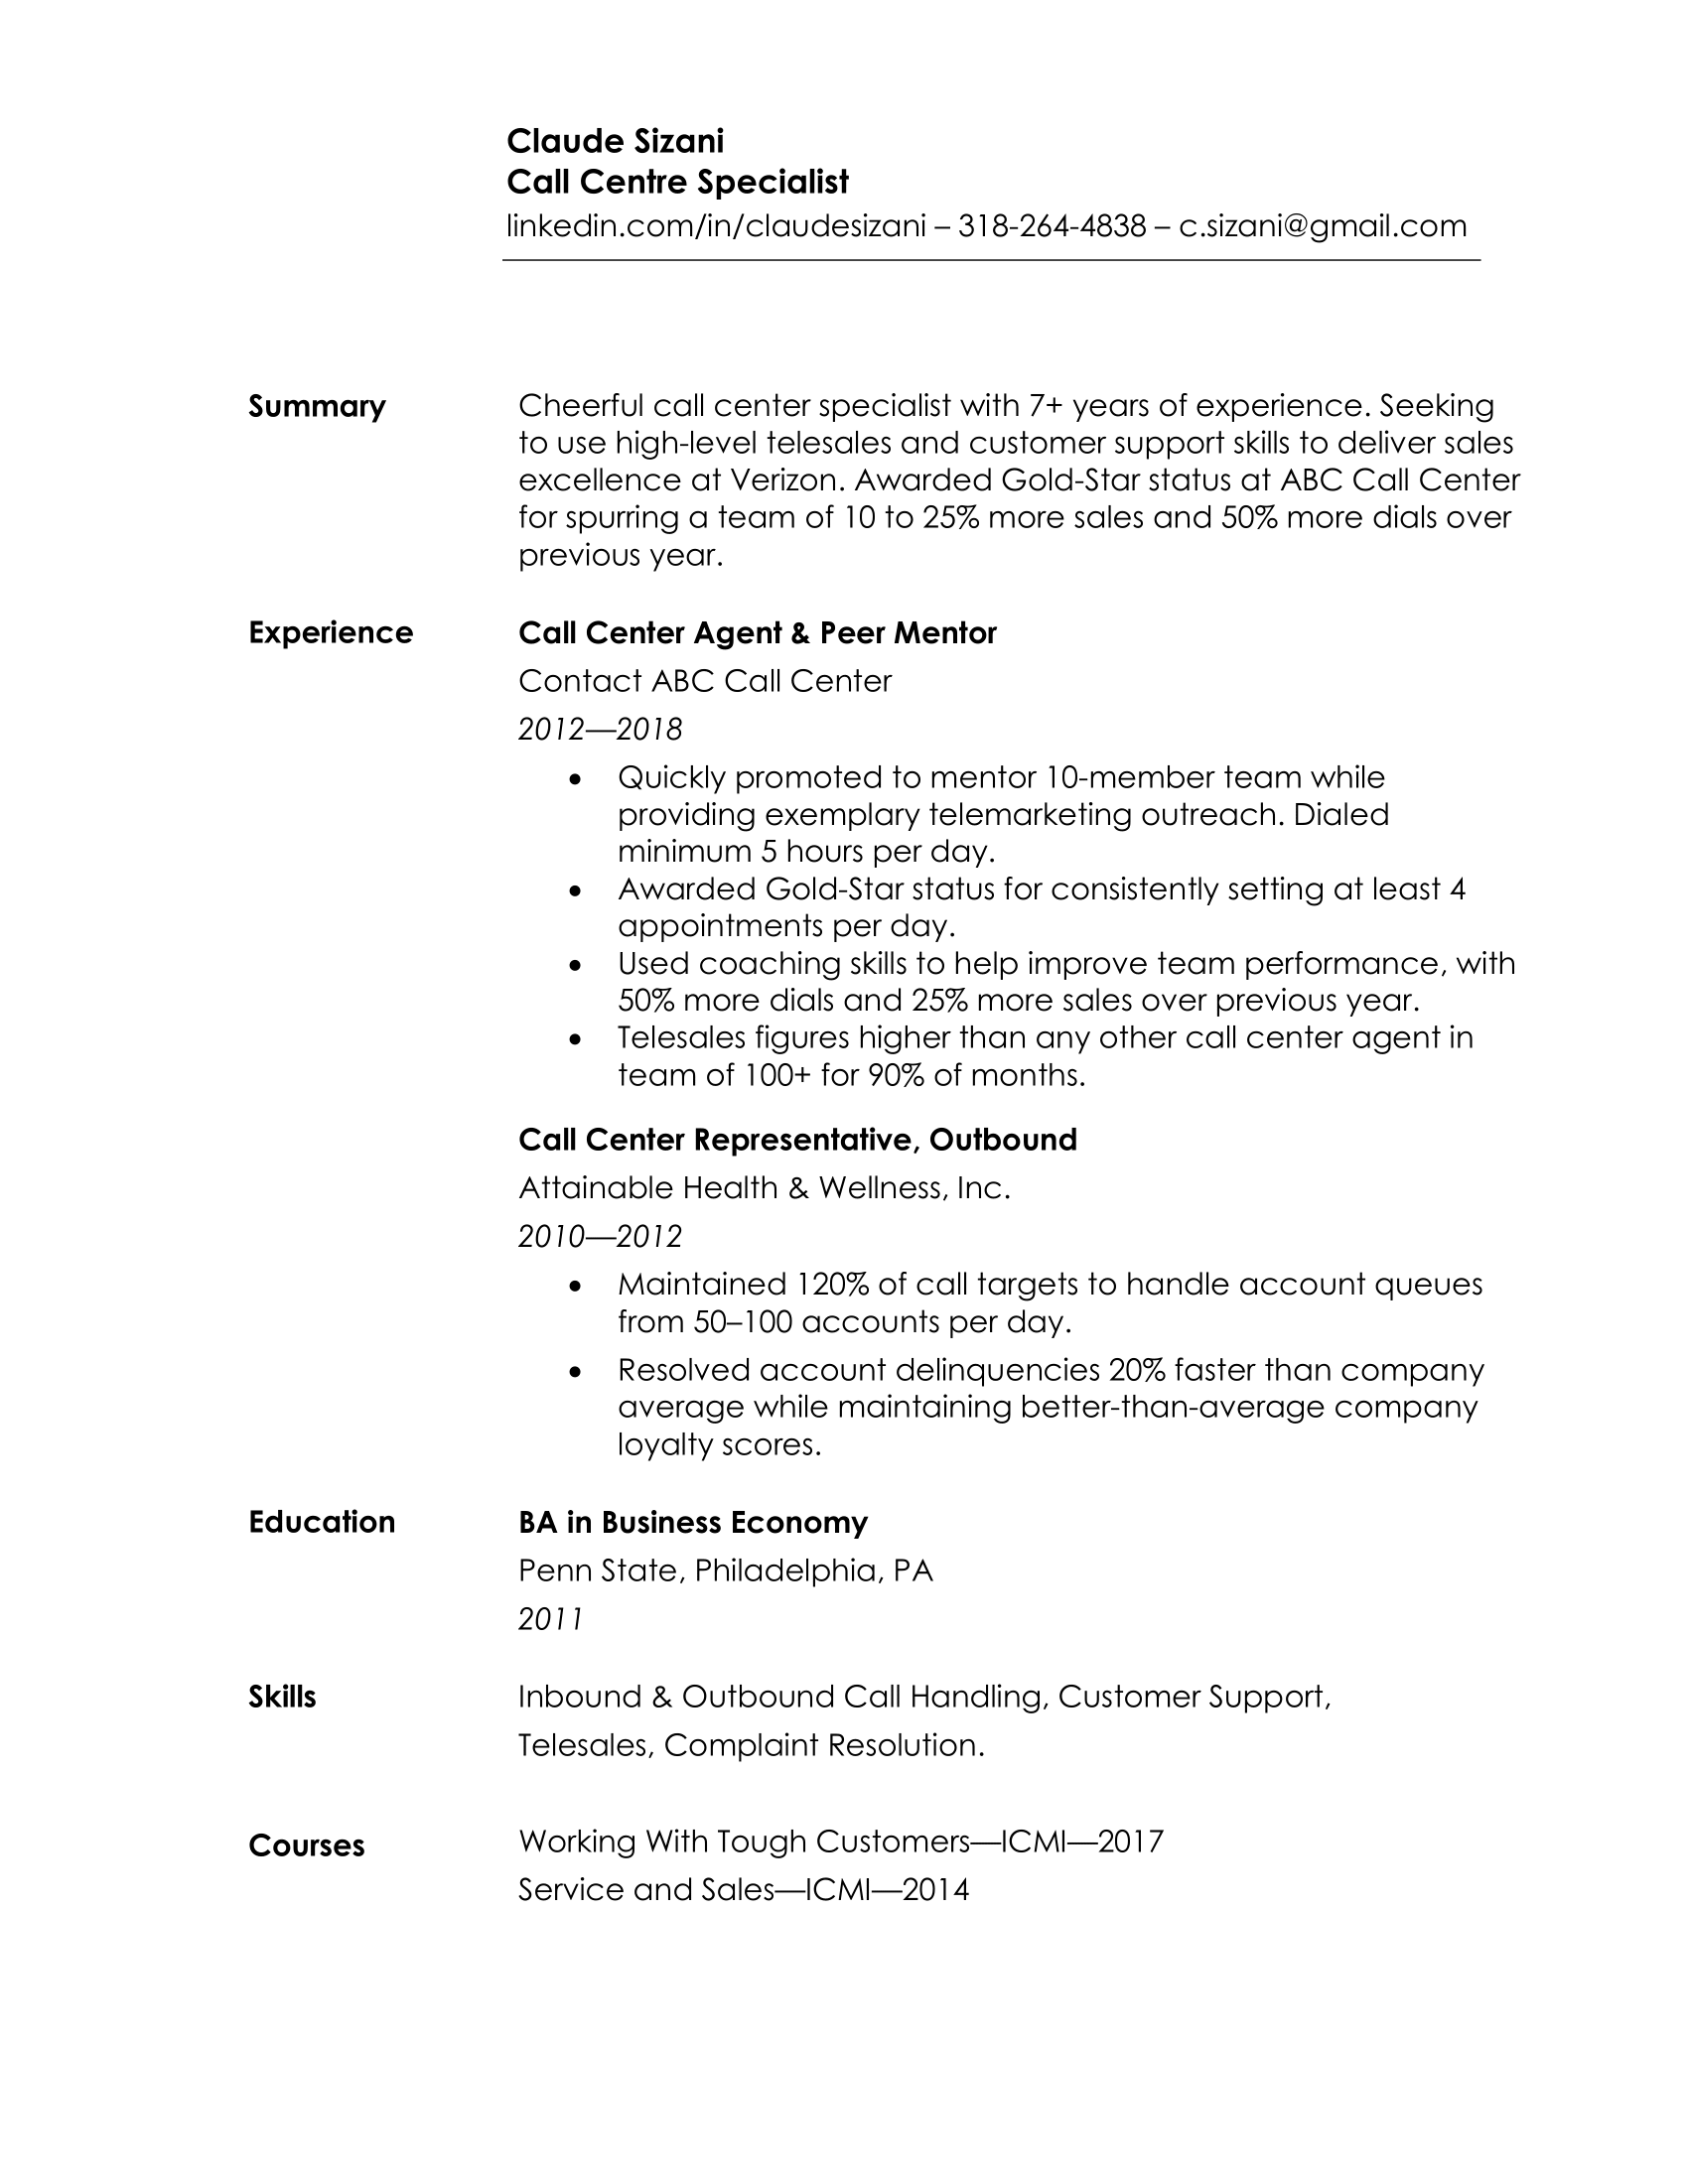 resume format  u0026 layout  20  best templates  u0026 samples  ms word